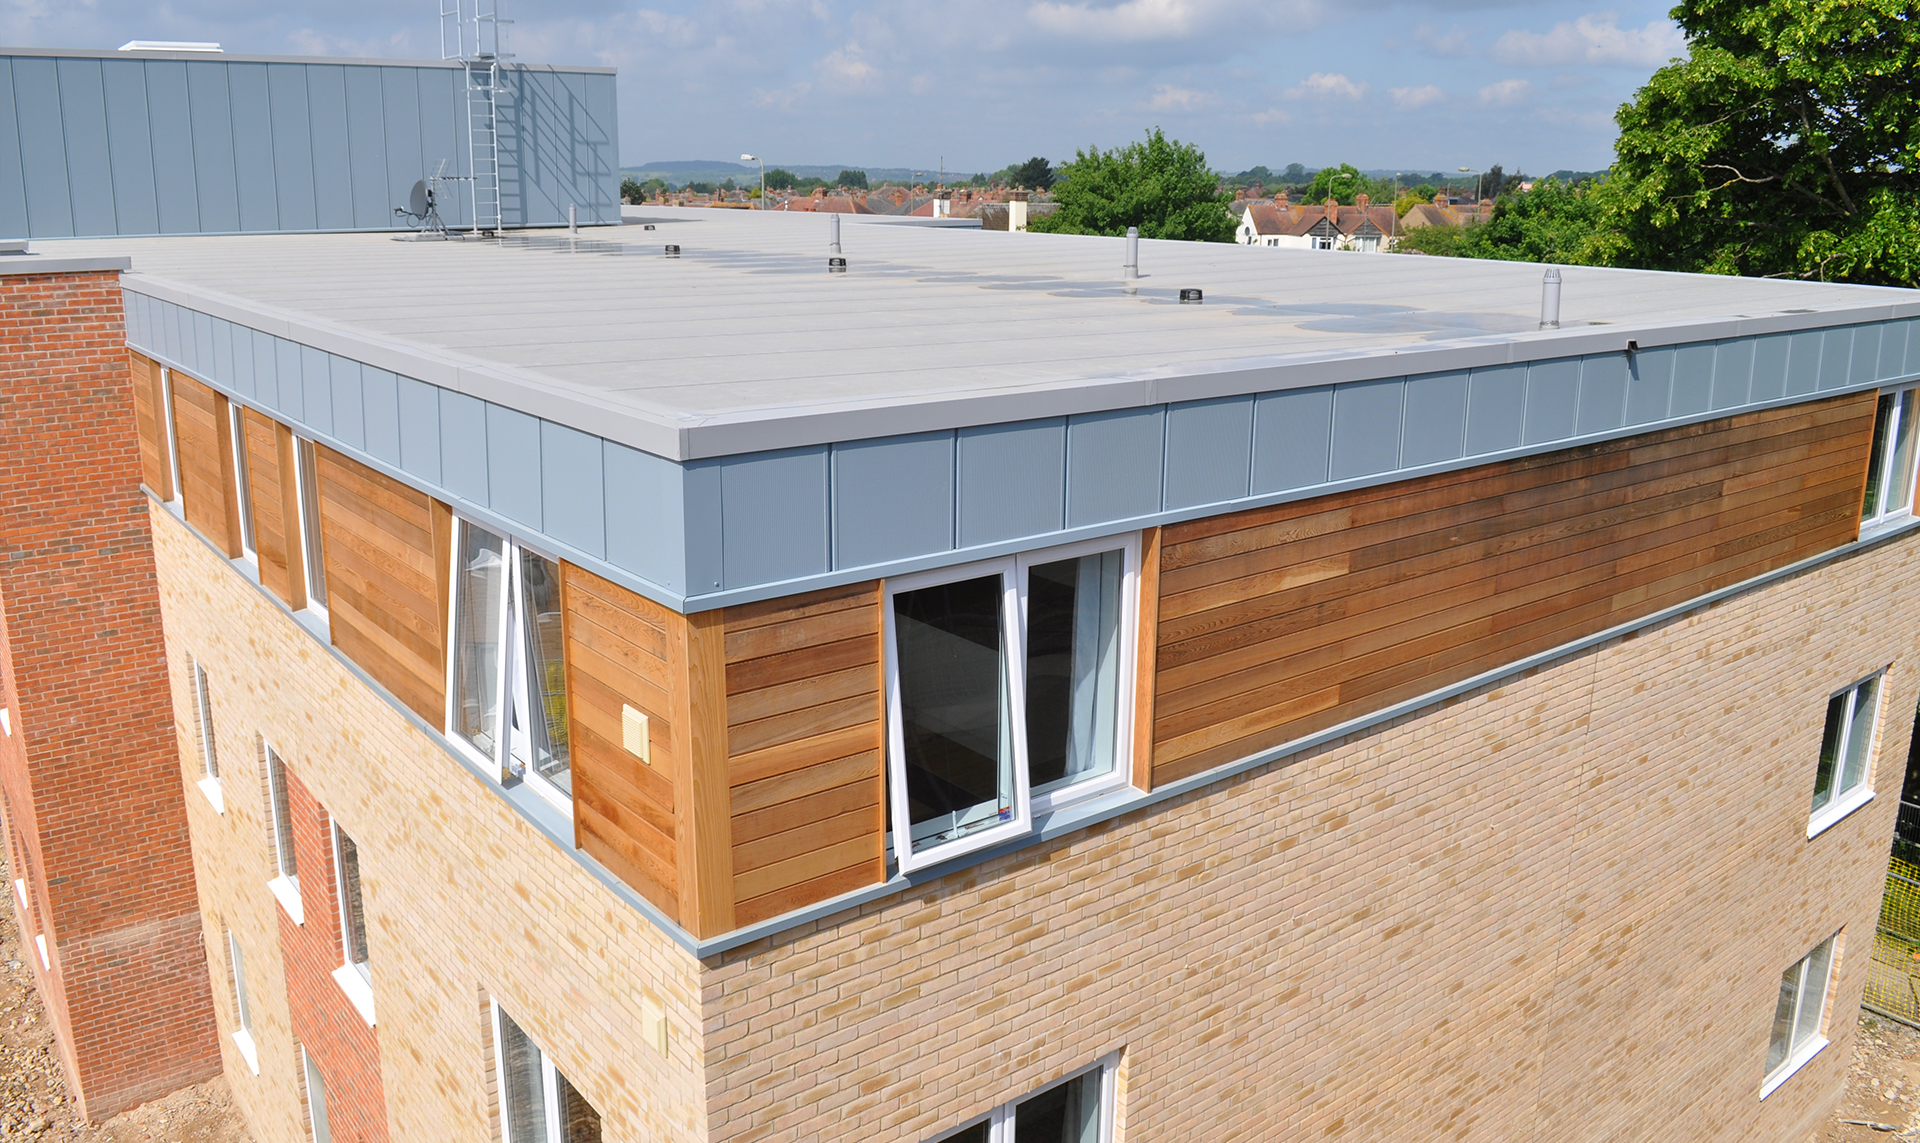 Flat Roofing Ips Group